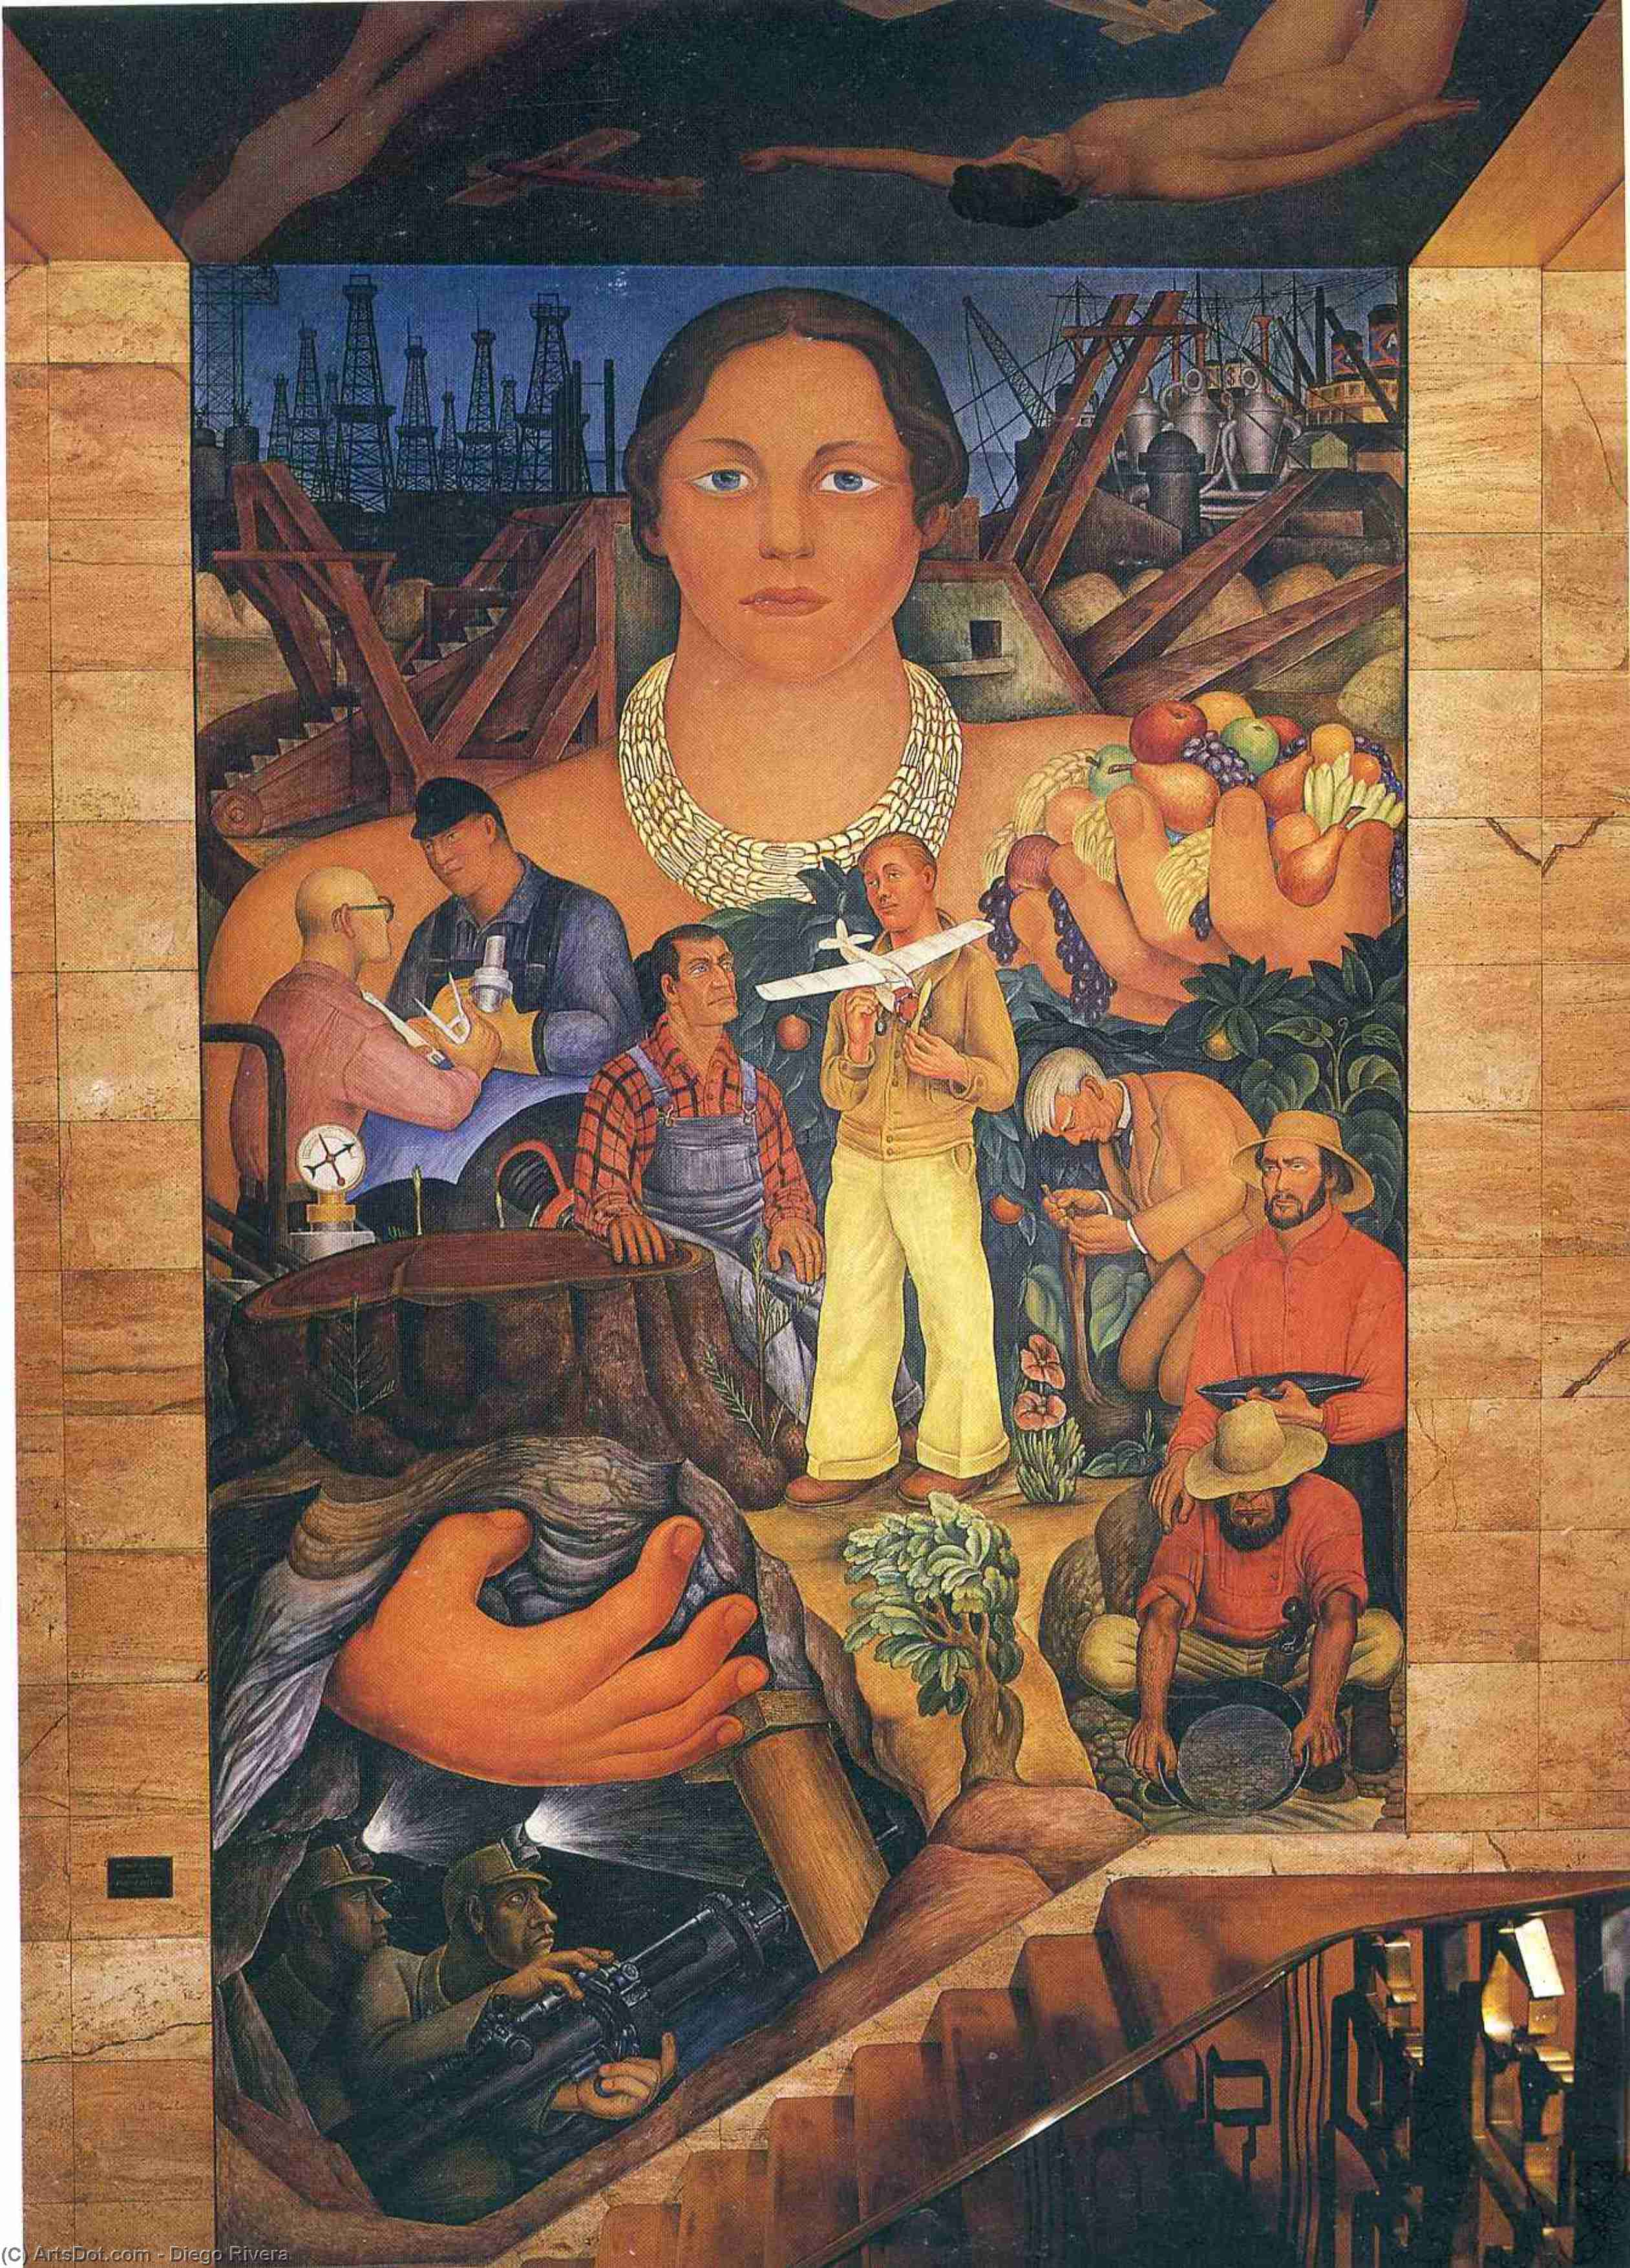 Allegory of California, Frescoes by Diego Rivera (1886-1957, Mexico)